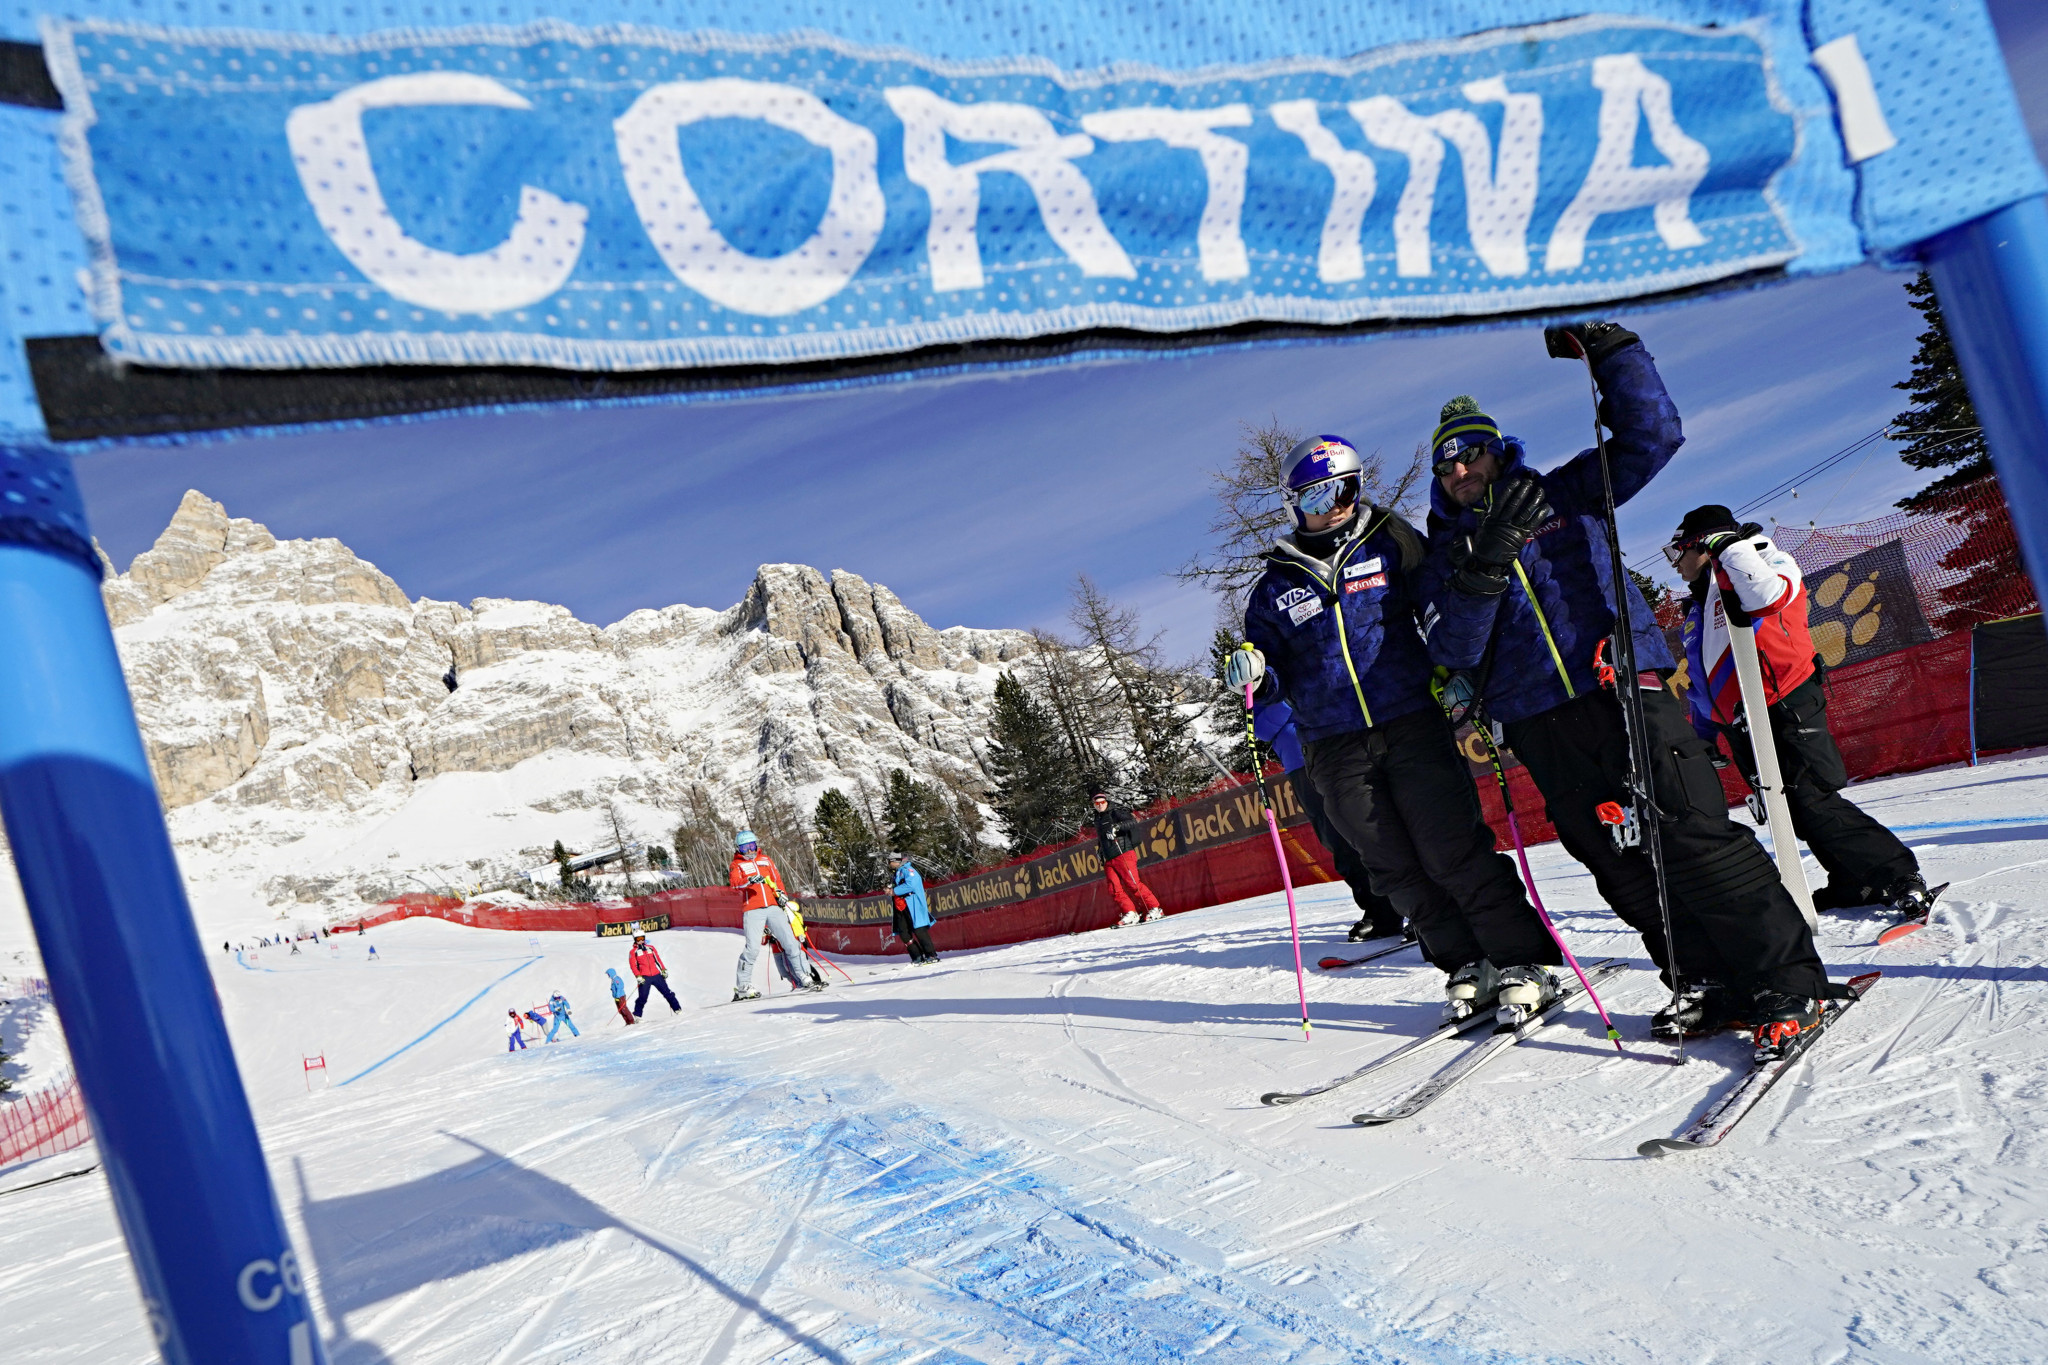 Cortina d'Ampezzo set for world's longest skiable route once new lifts are built